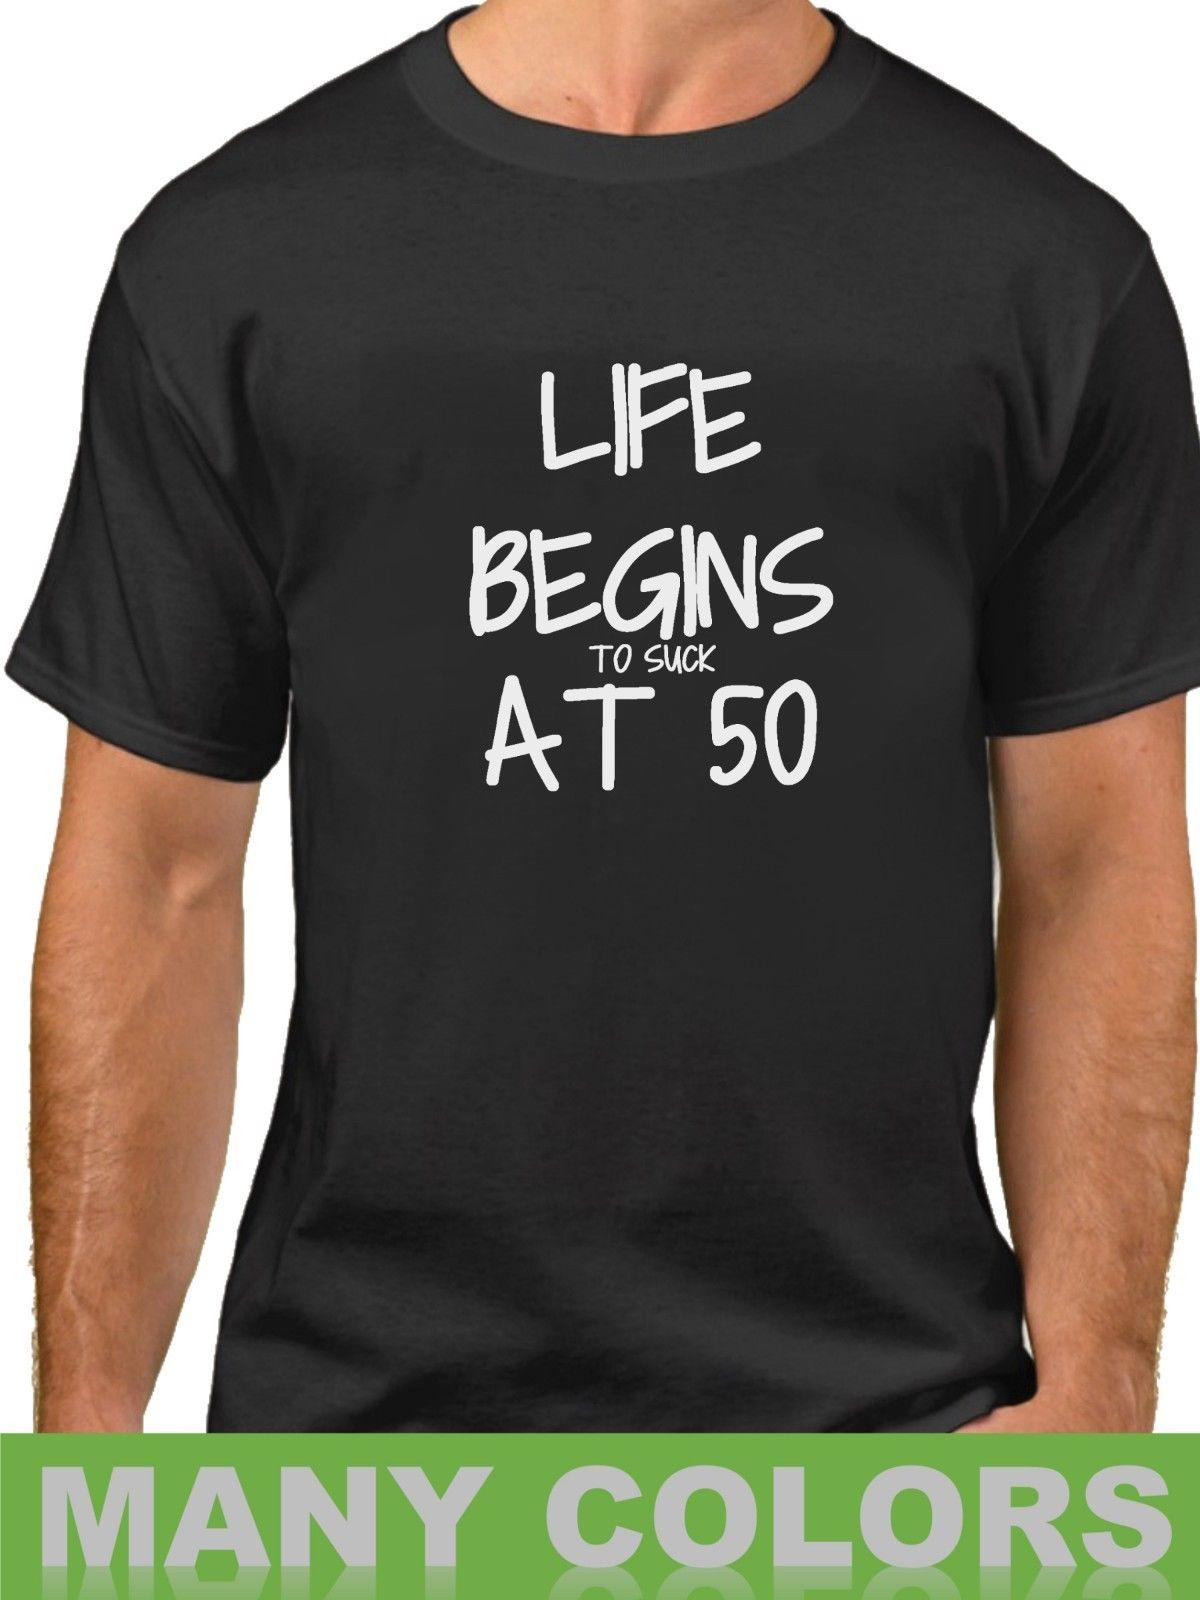 Details Zu Life Begins To Suck At 50 T Shirt Years Of Being 50th Birthday Bday Tee Funny Unisex Shop For Shirts Online With A